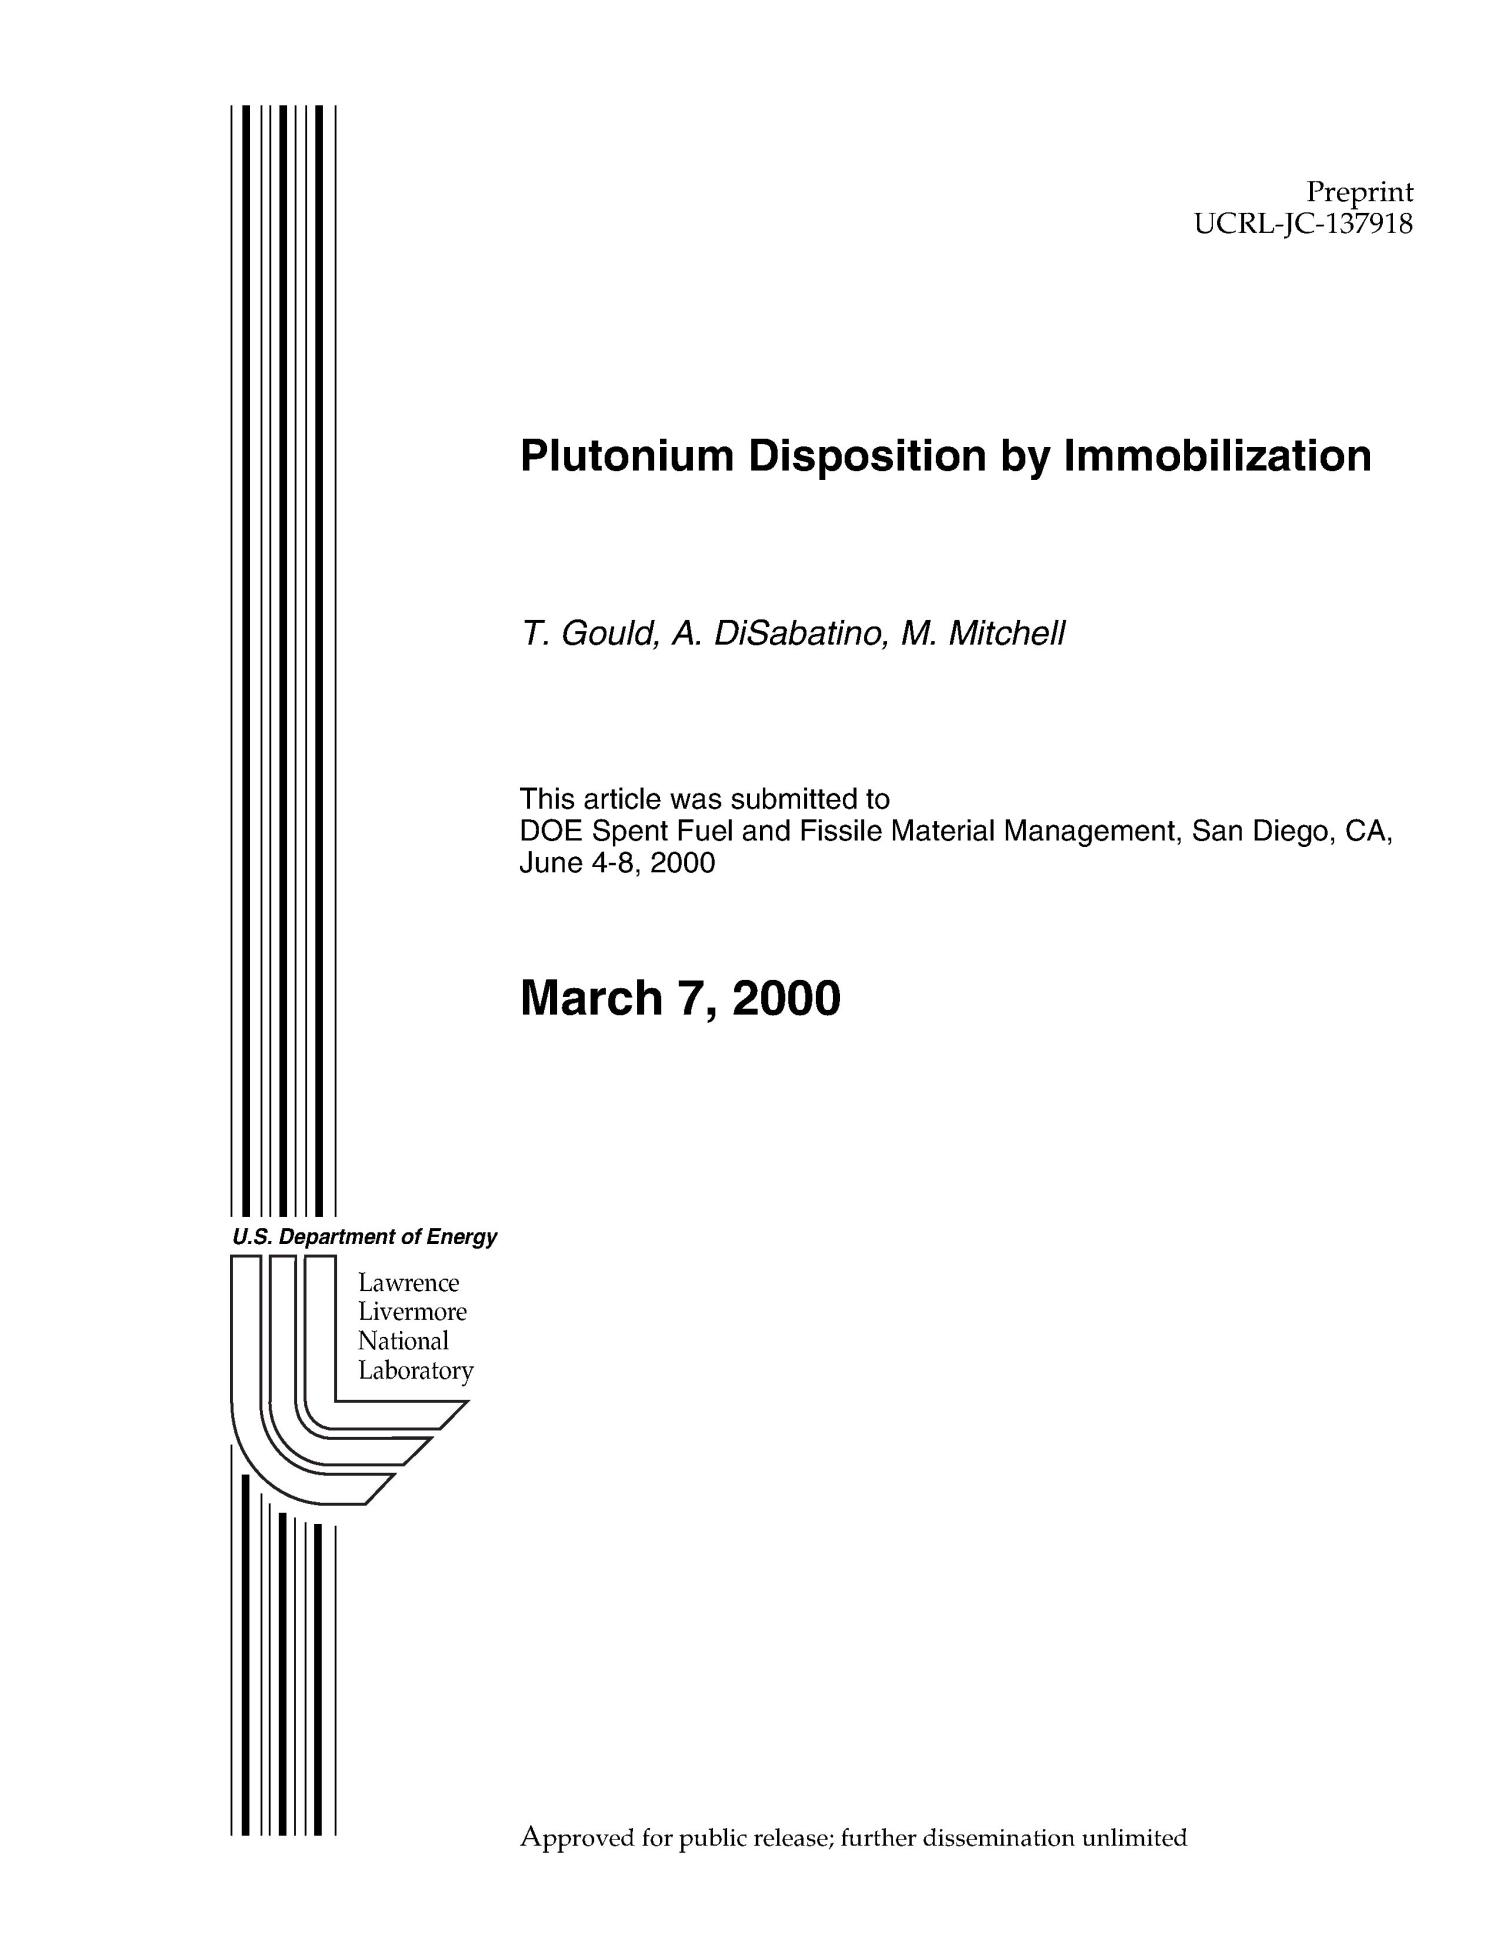 Plutonium Disposition by Immobilization                                                                                                      [Sequence #]: 1 of 6